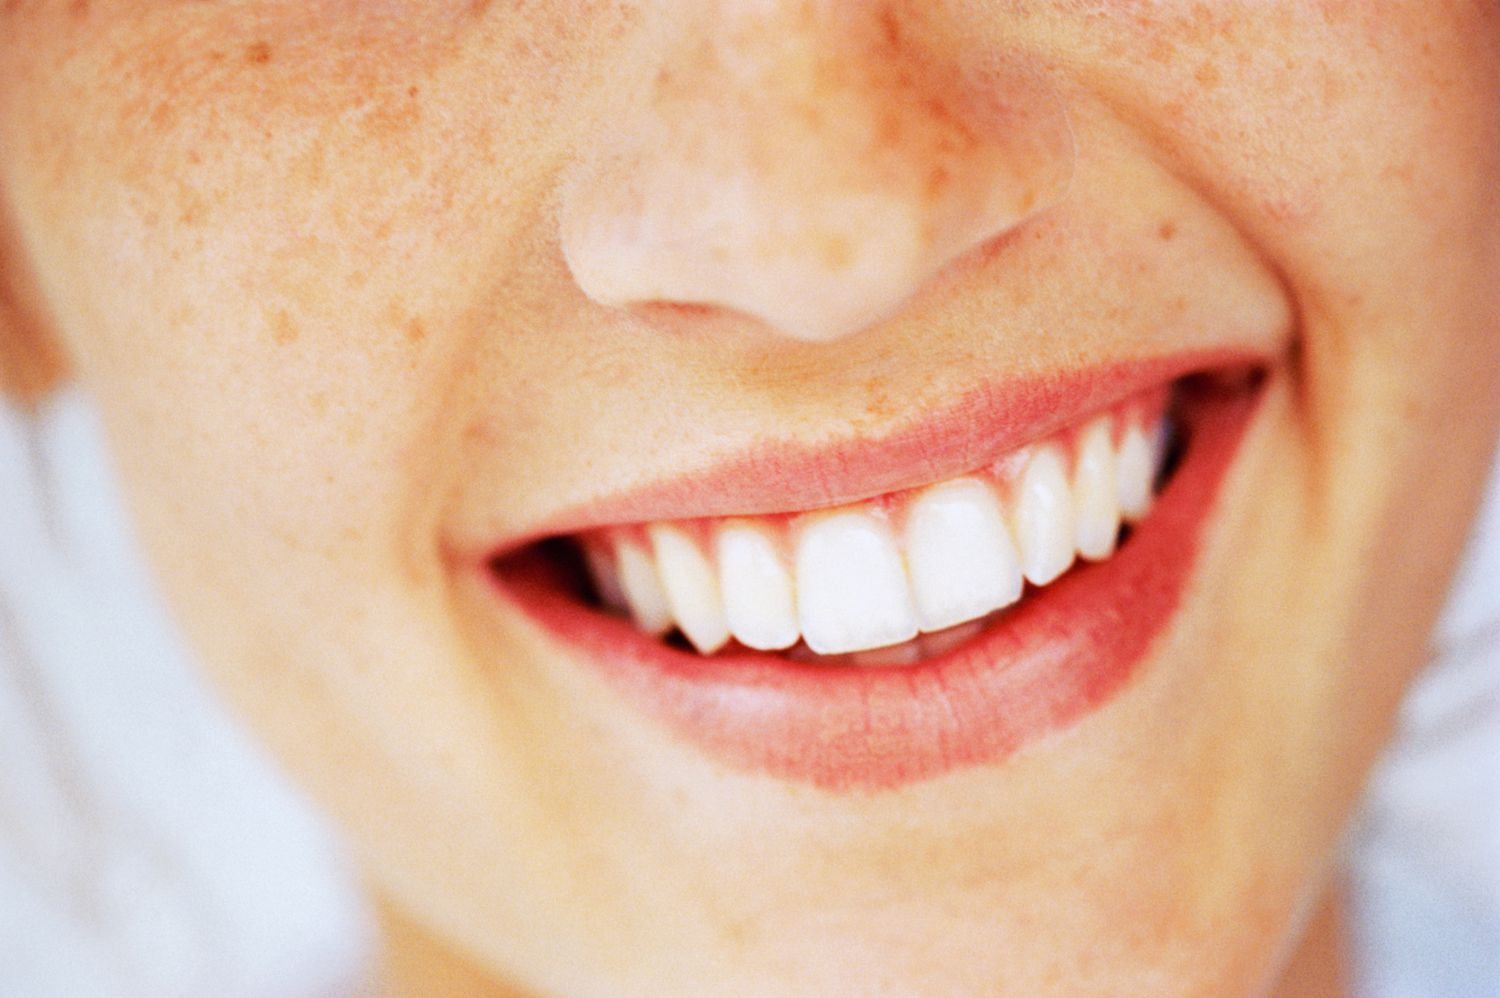 Person smiling showing teeth including cuspids